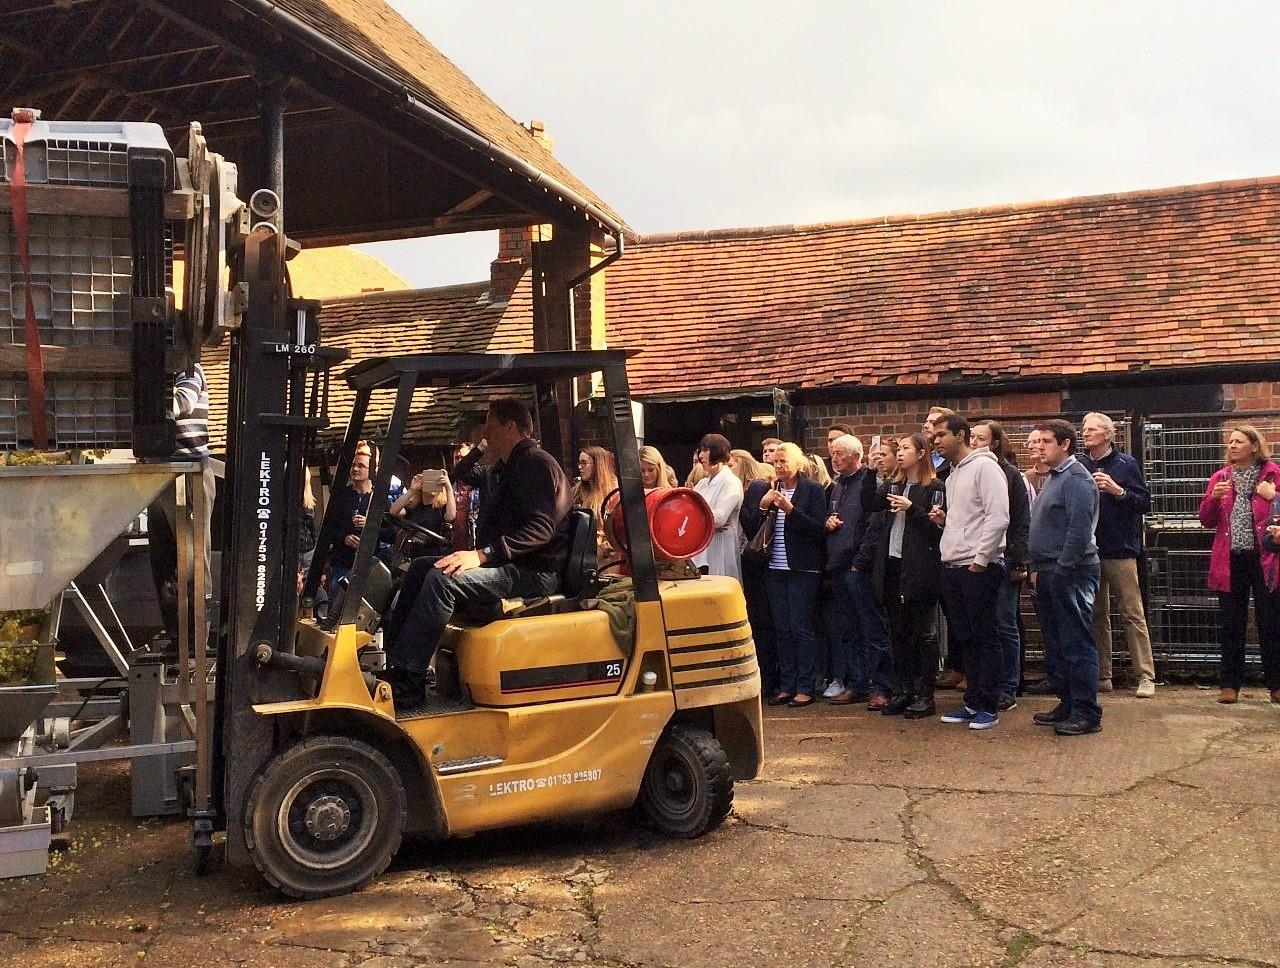 Friday 17th April 2020 at 2 pm - Vineyard Tour & Wine Tasting